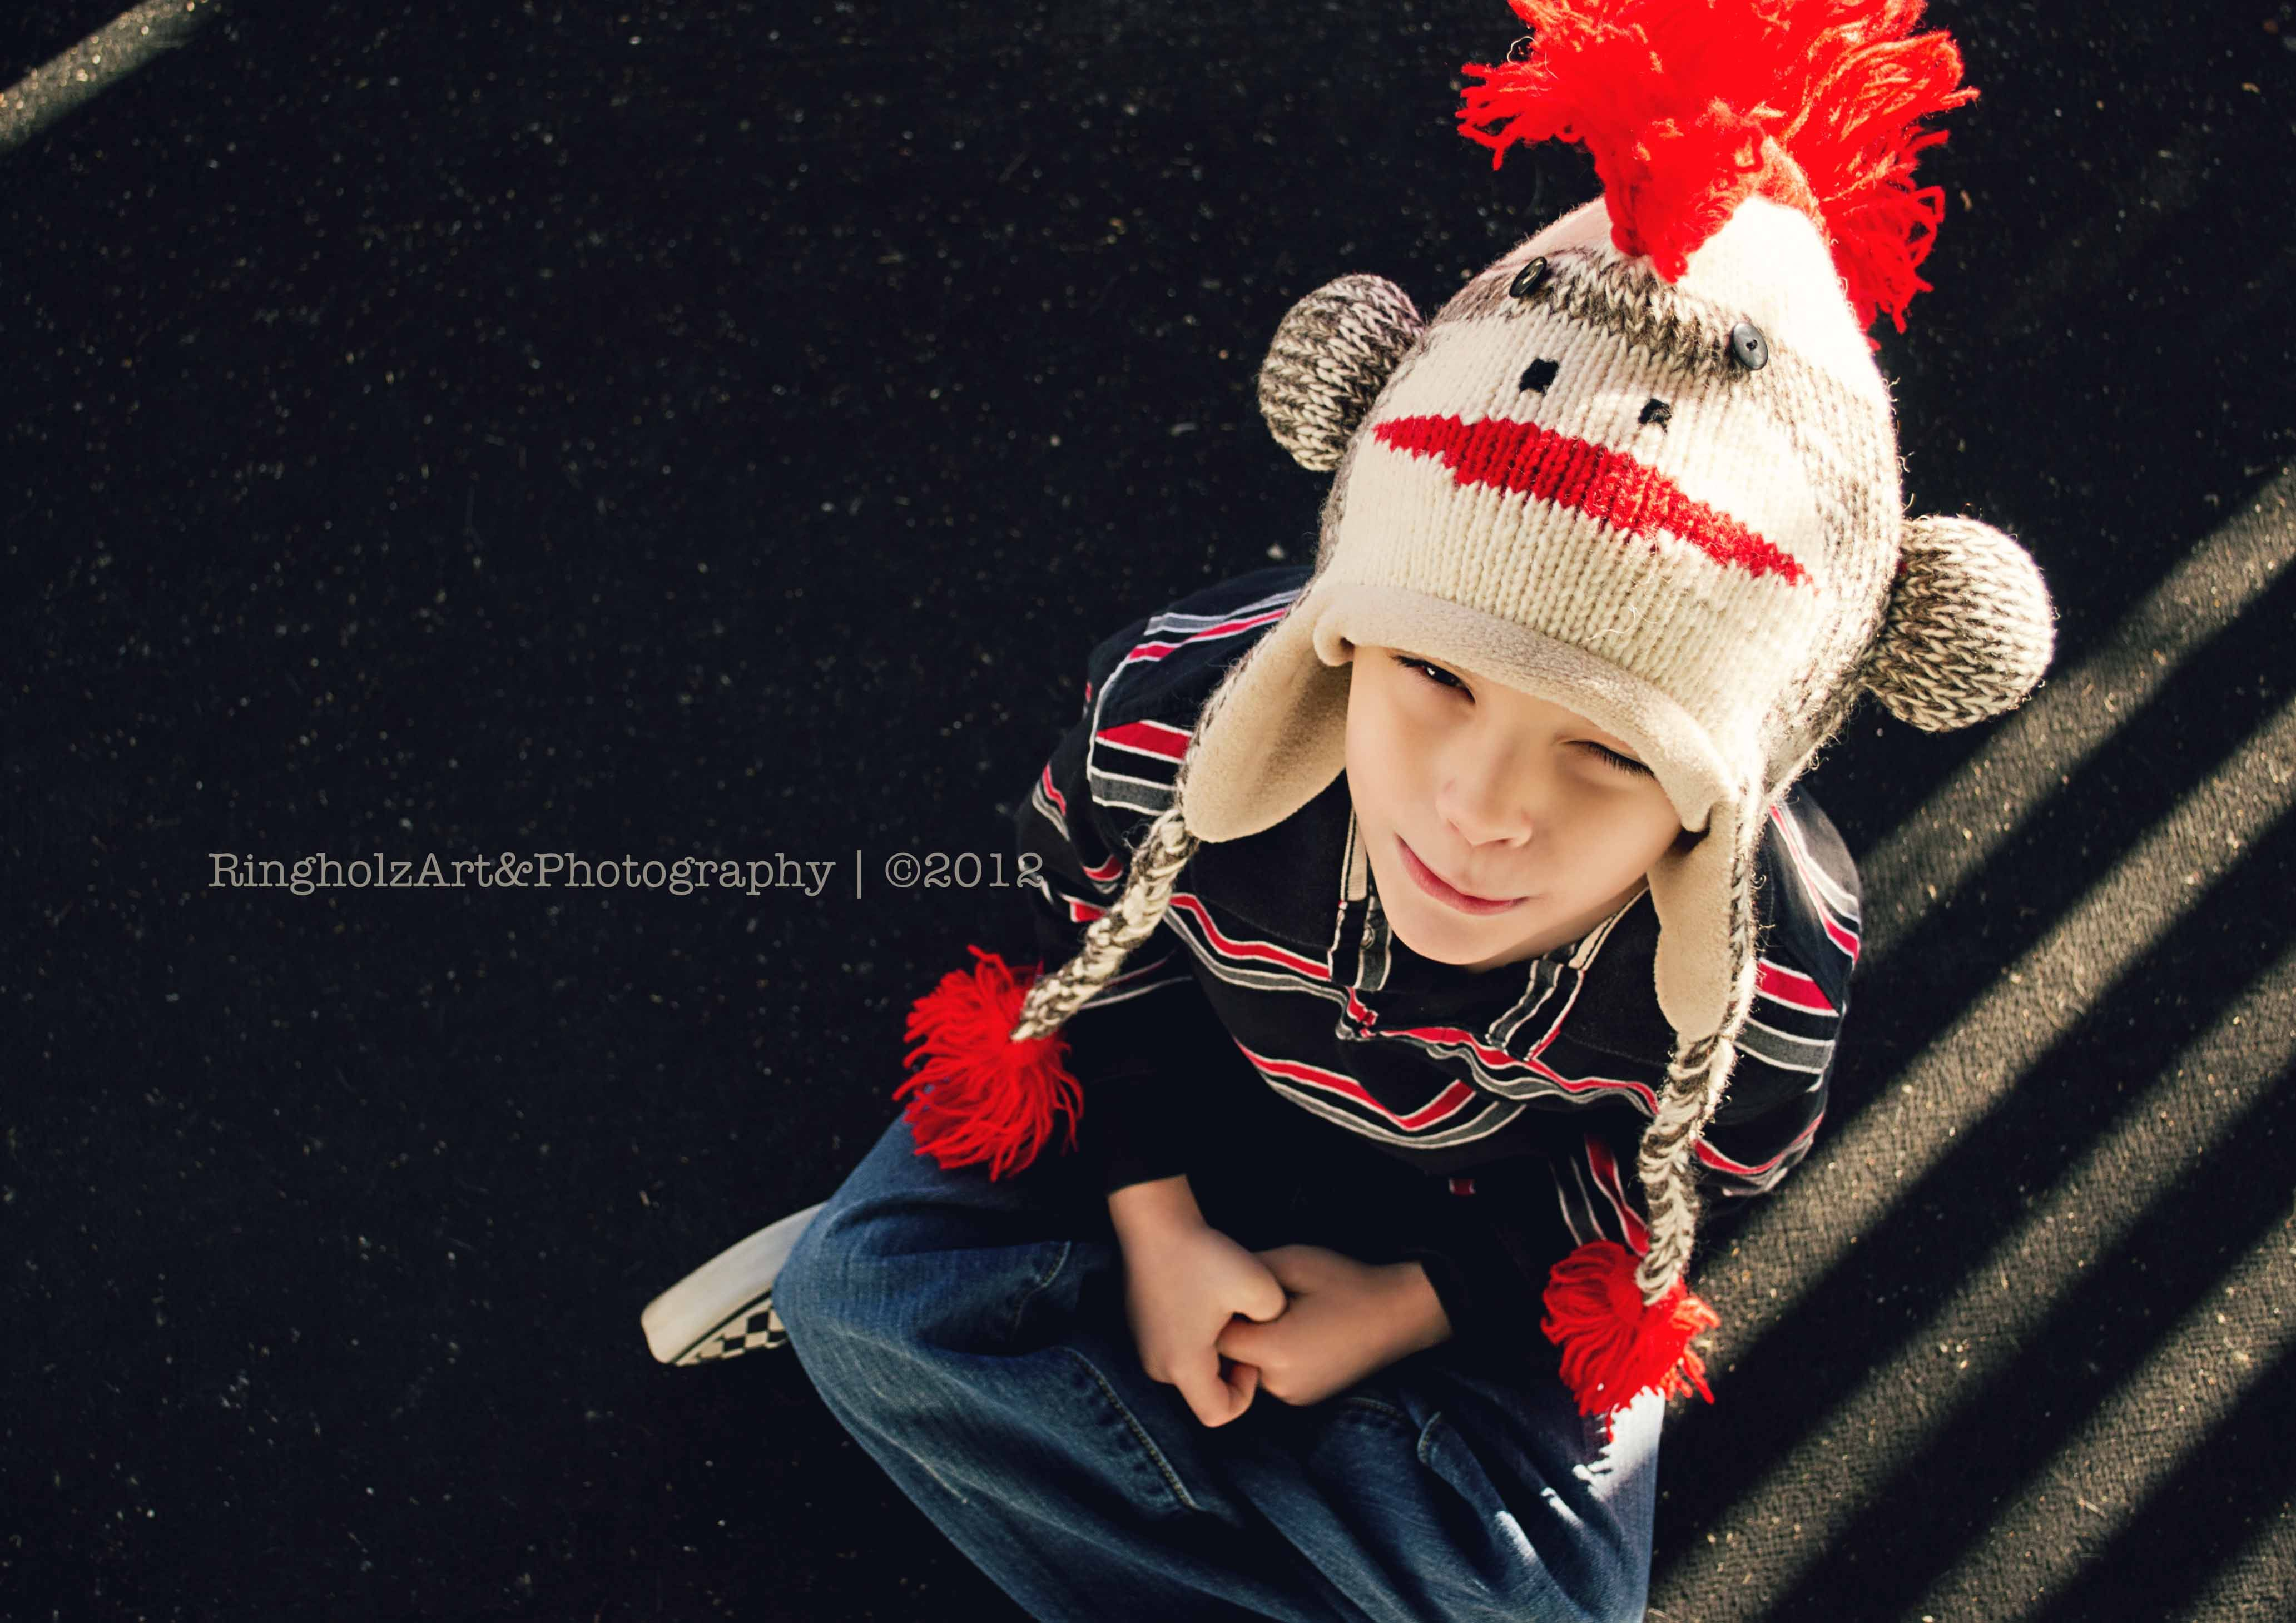 Just love his monkey mohawk hat uc ringholz art u photography